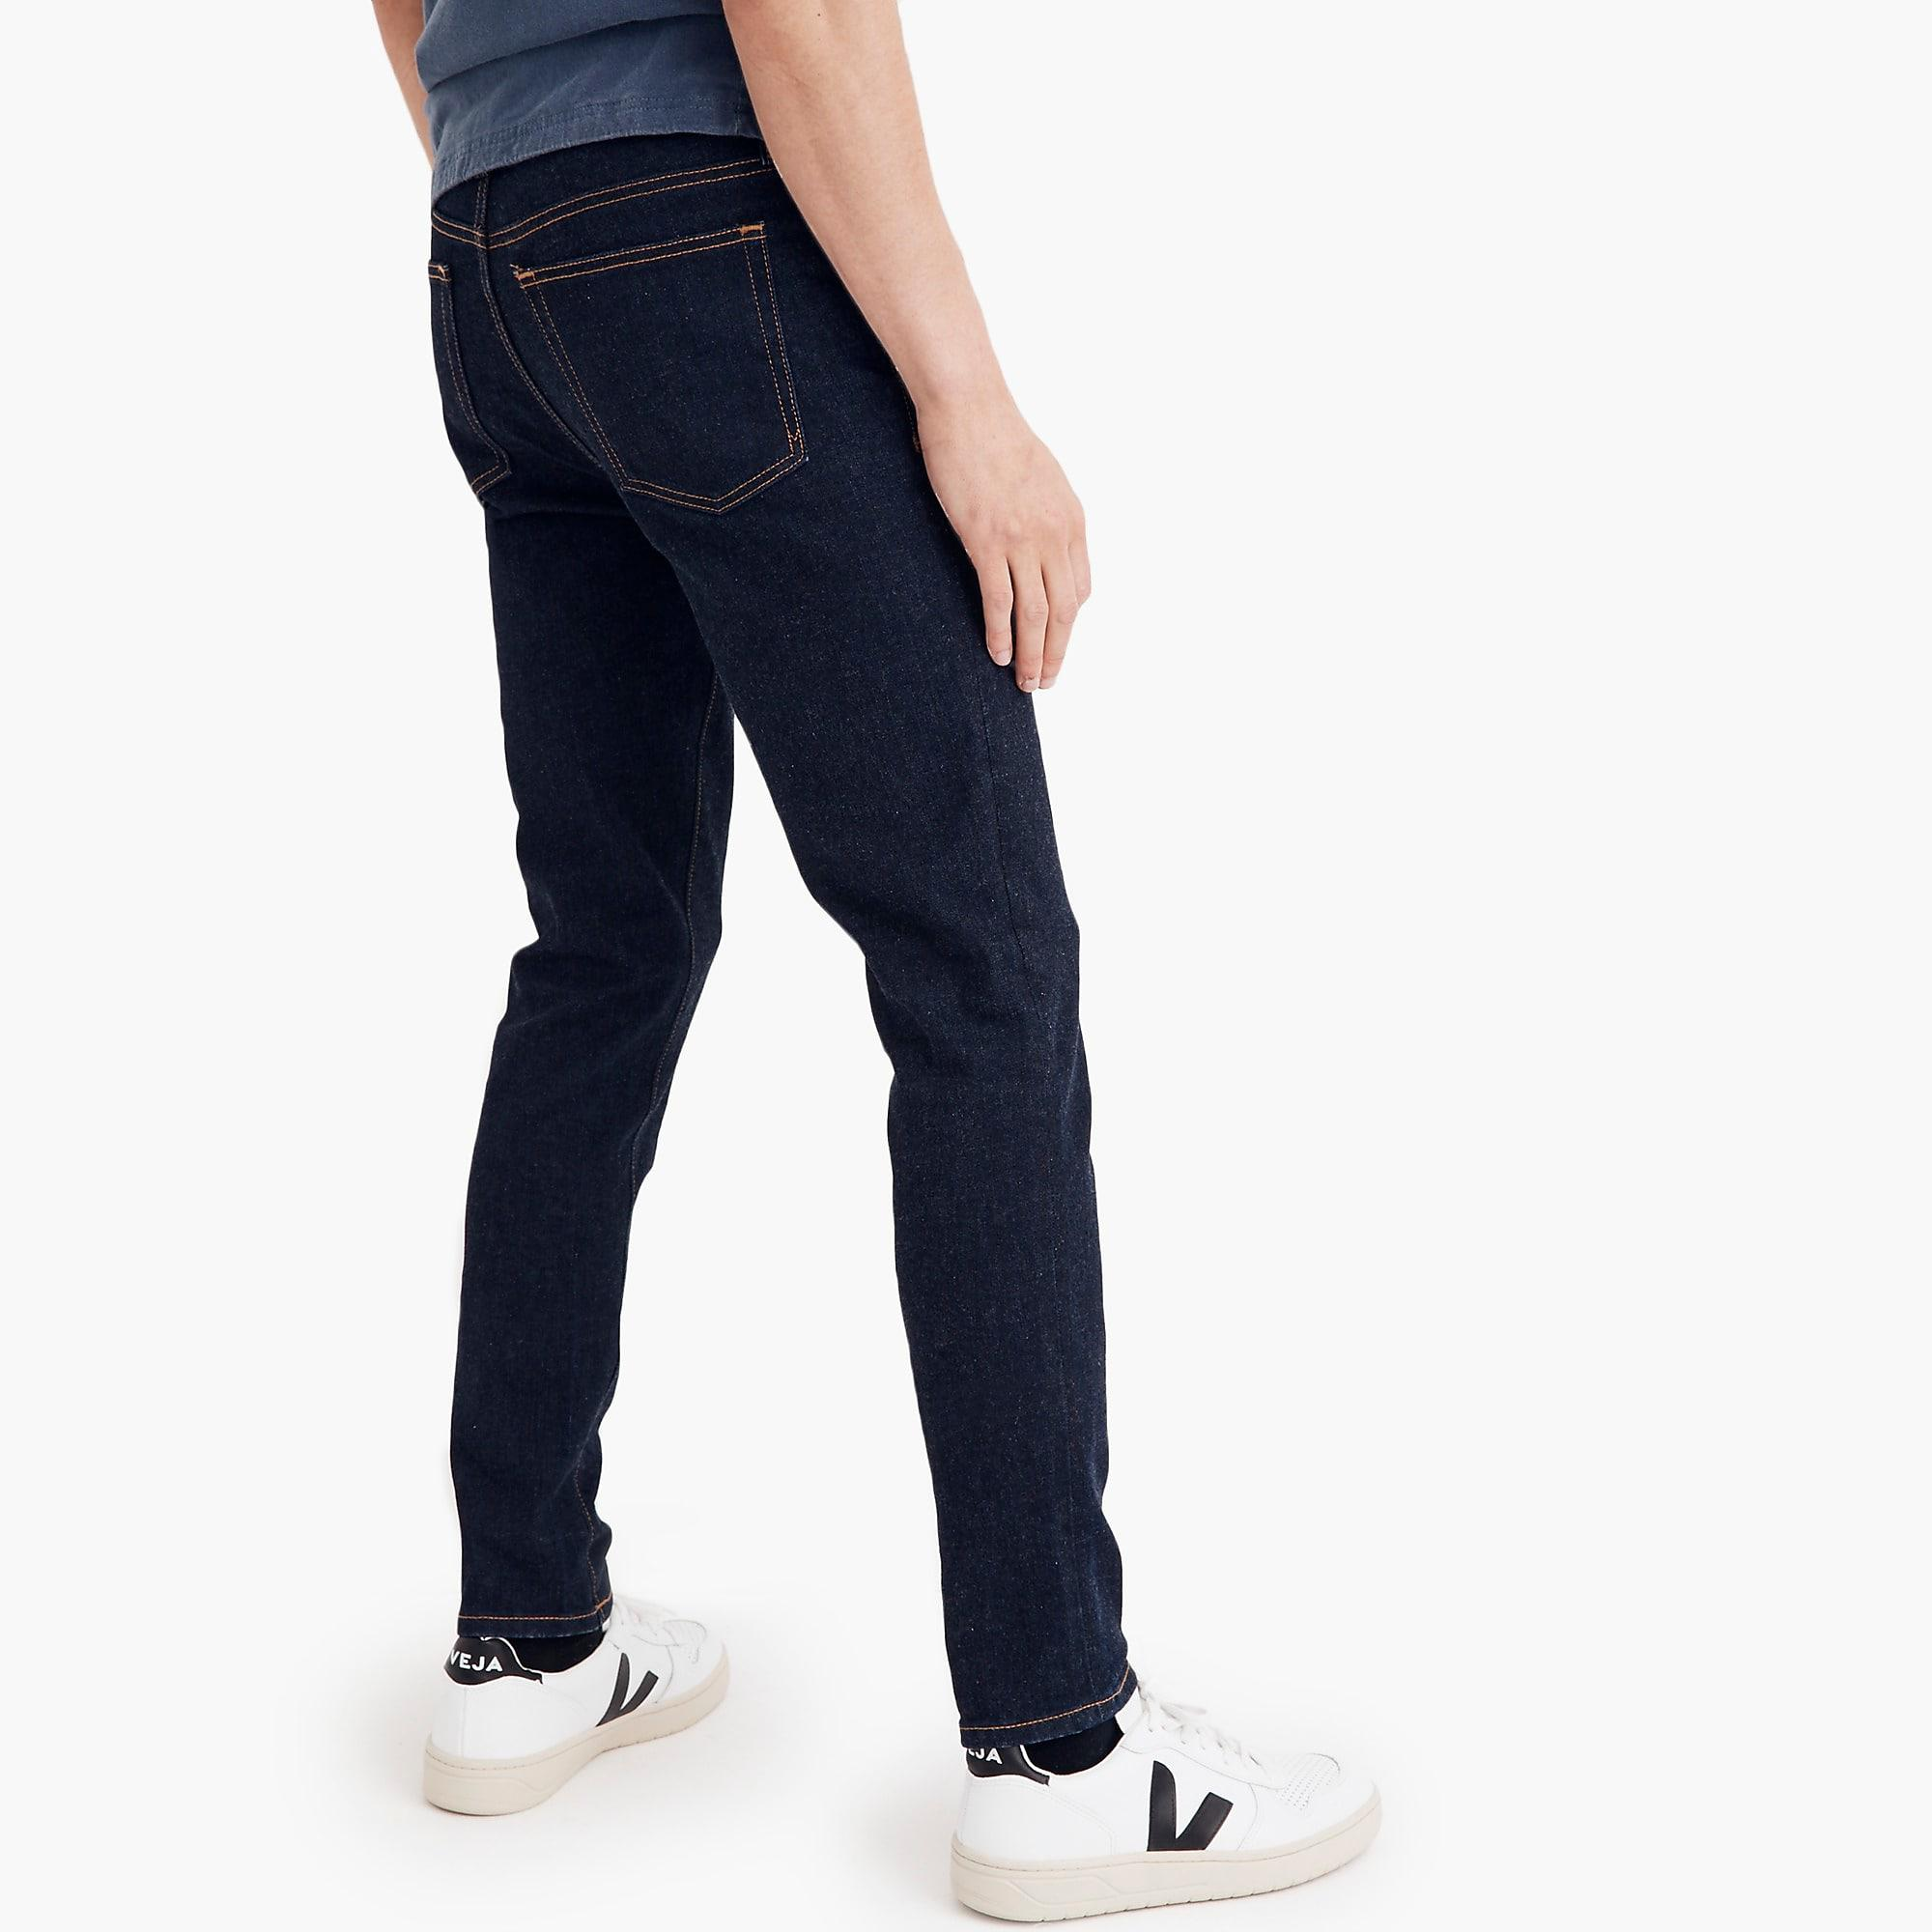 859a2a49 Lyst - J.Crew Madewell Skinny Jeans In Rinse Wash in Blue for Men